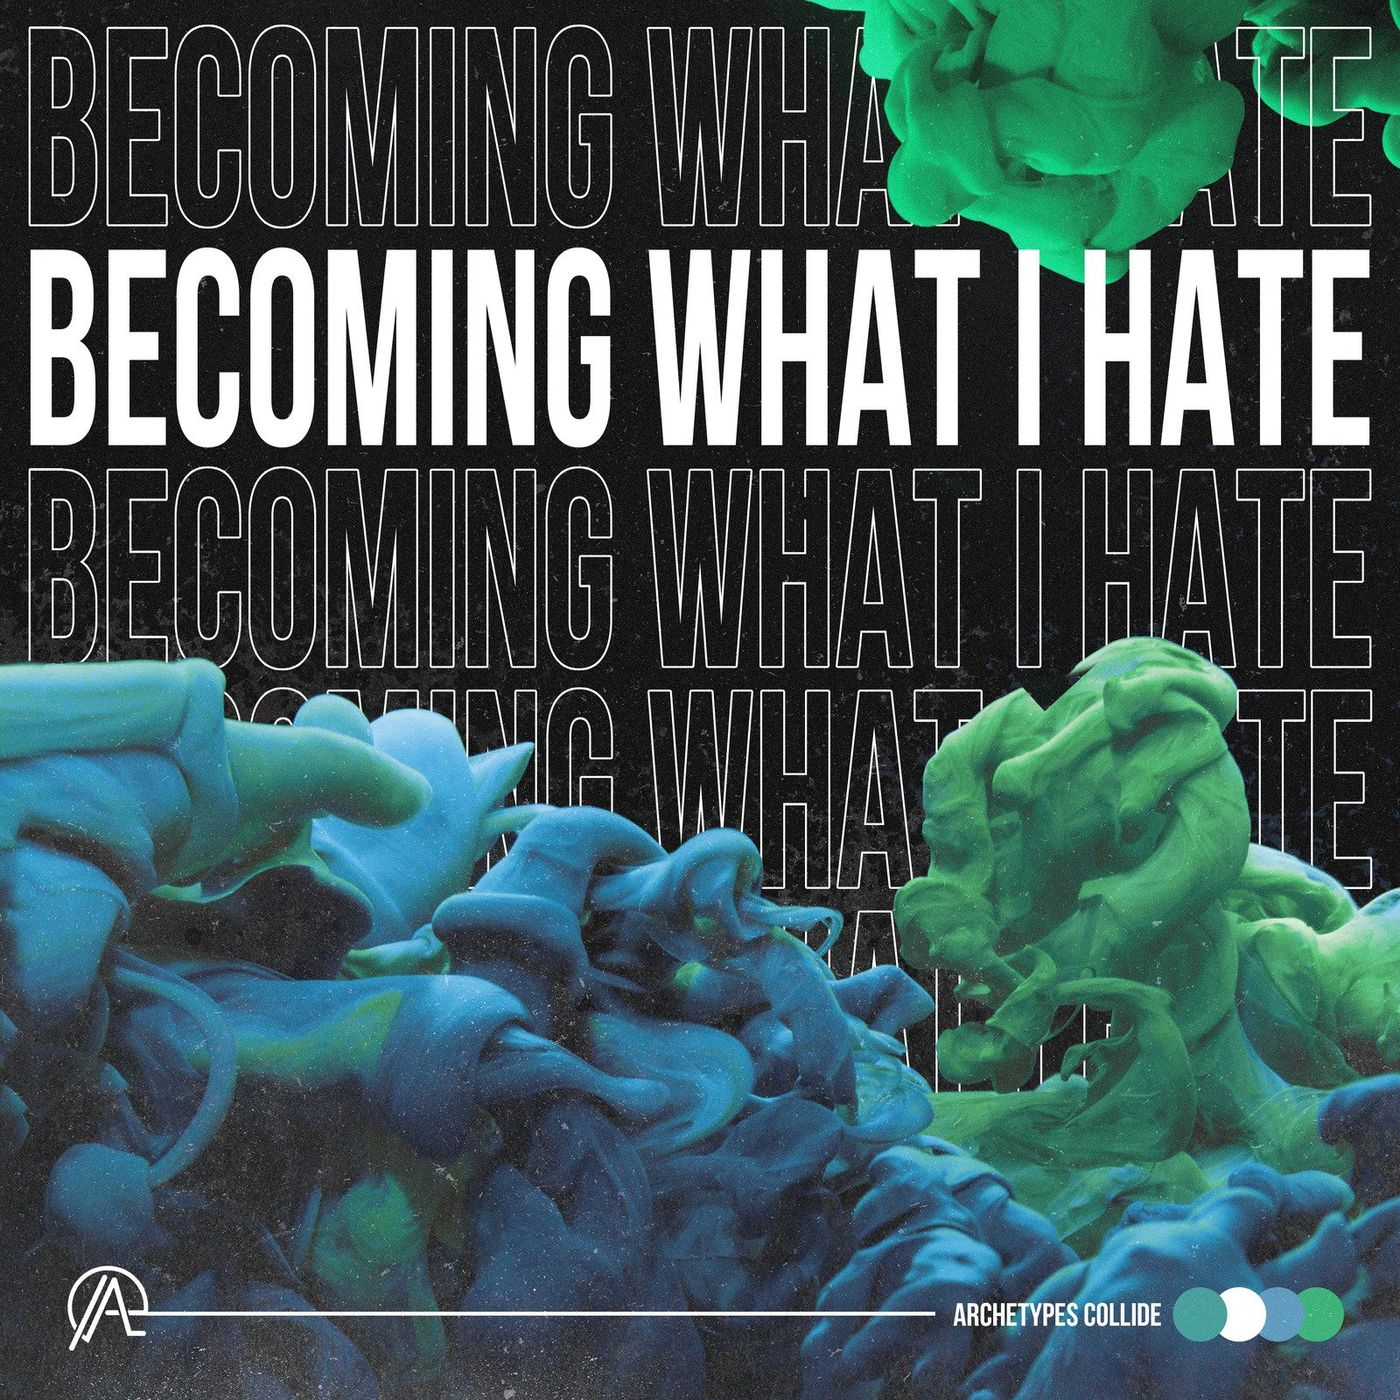 Archetypes Collide - Becoming What I Hate [single] (2021)